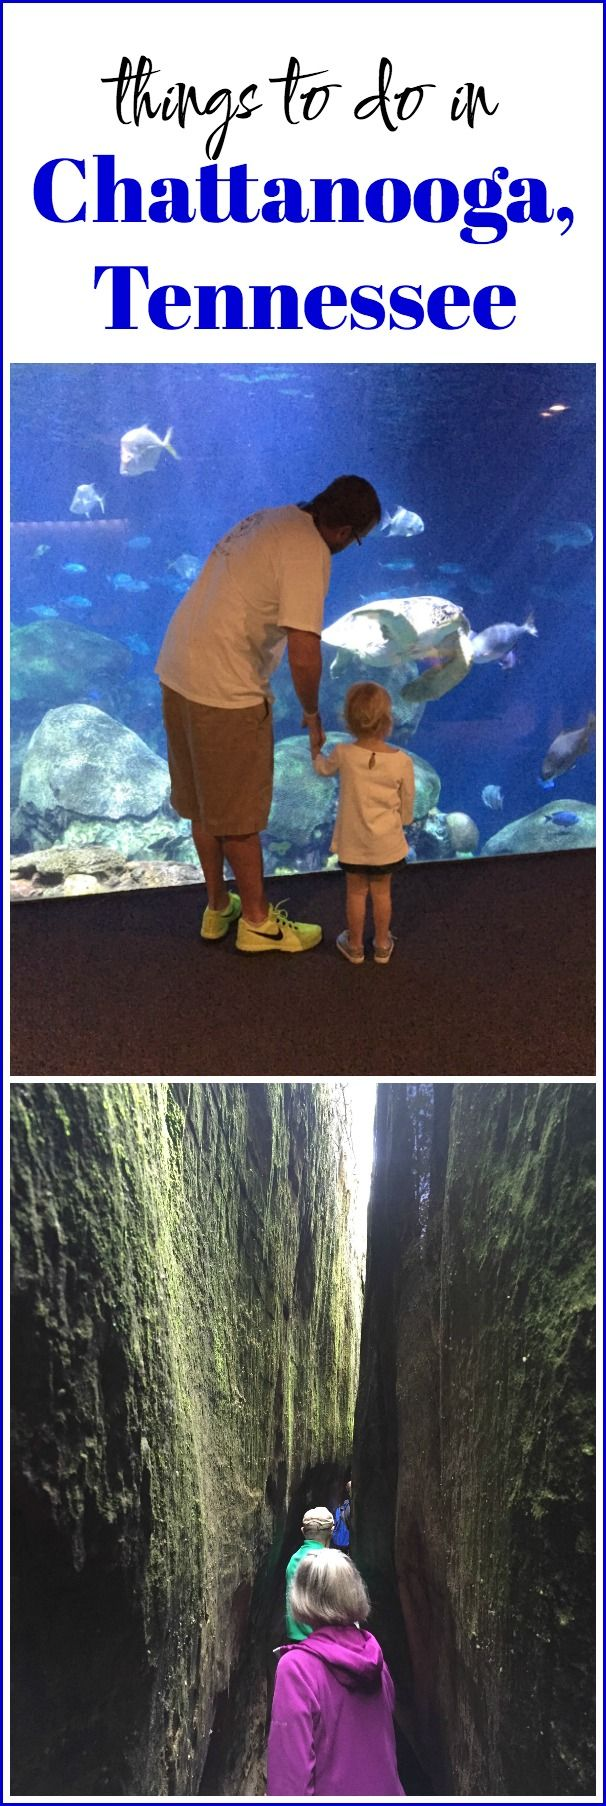 Things to Do in Chattanooga, Tennessee - a great spot for families!